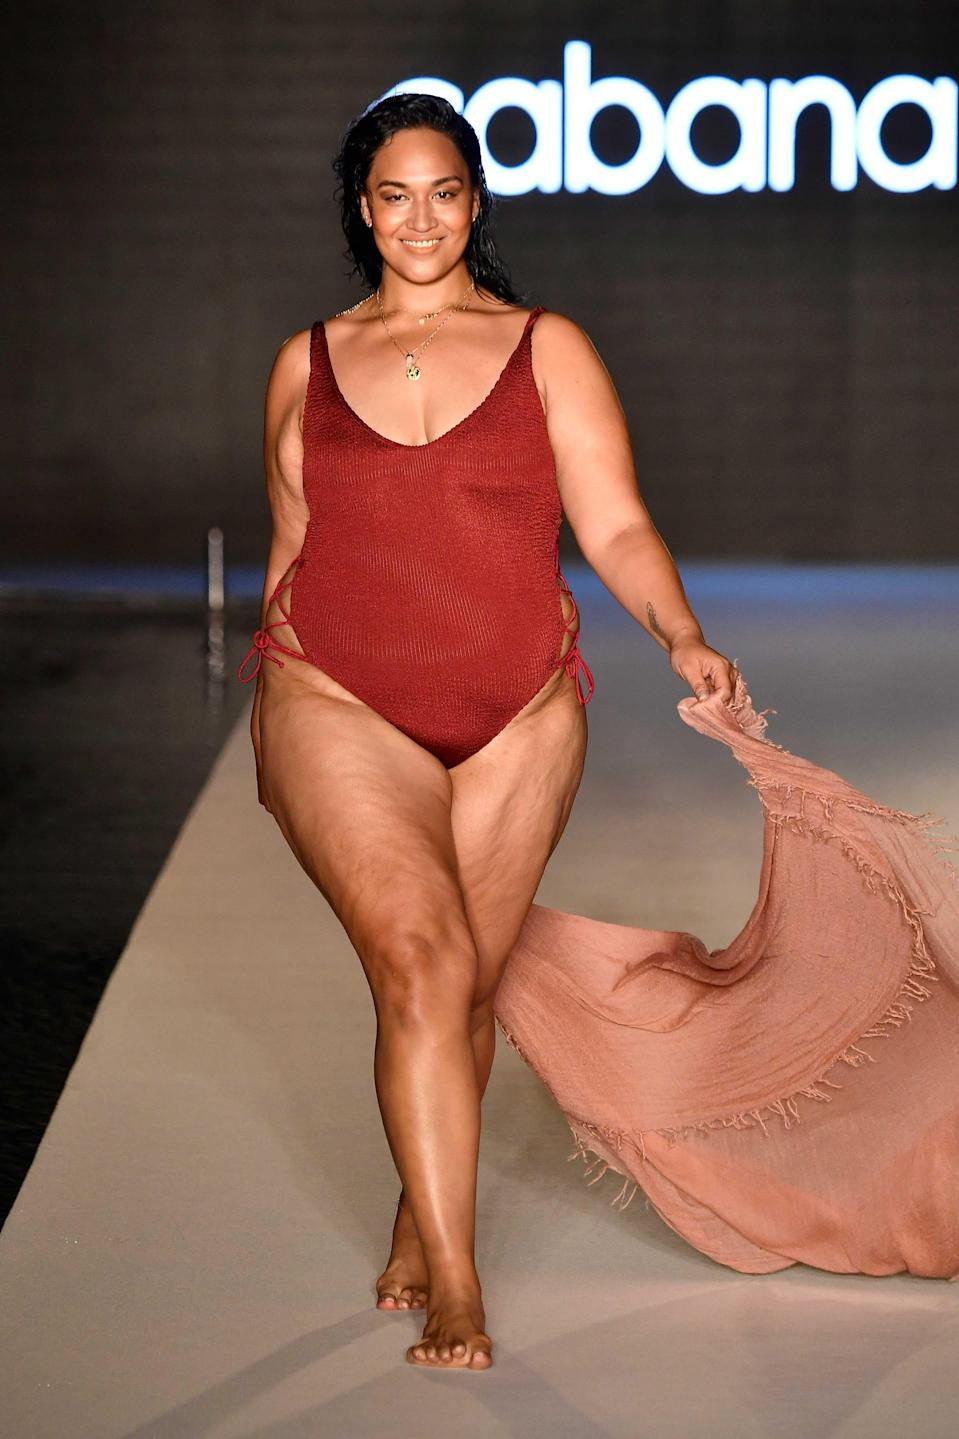 <p>A model walks the runway wearing a red hot one-piece swimsuit for the 2018 <em>Sports Illustrated</em> swimsuit show during Miami Swim Week at the W South Beach hotel on July 15. (Photo: Alexander Tamargo/Getty Images for Sports Illustrated) </p>